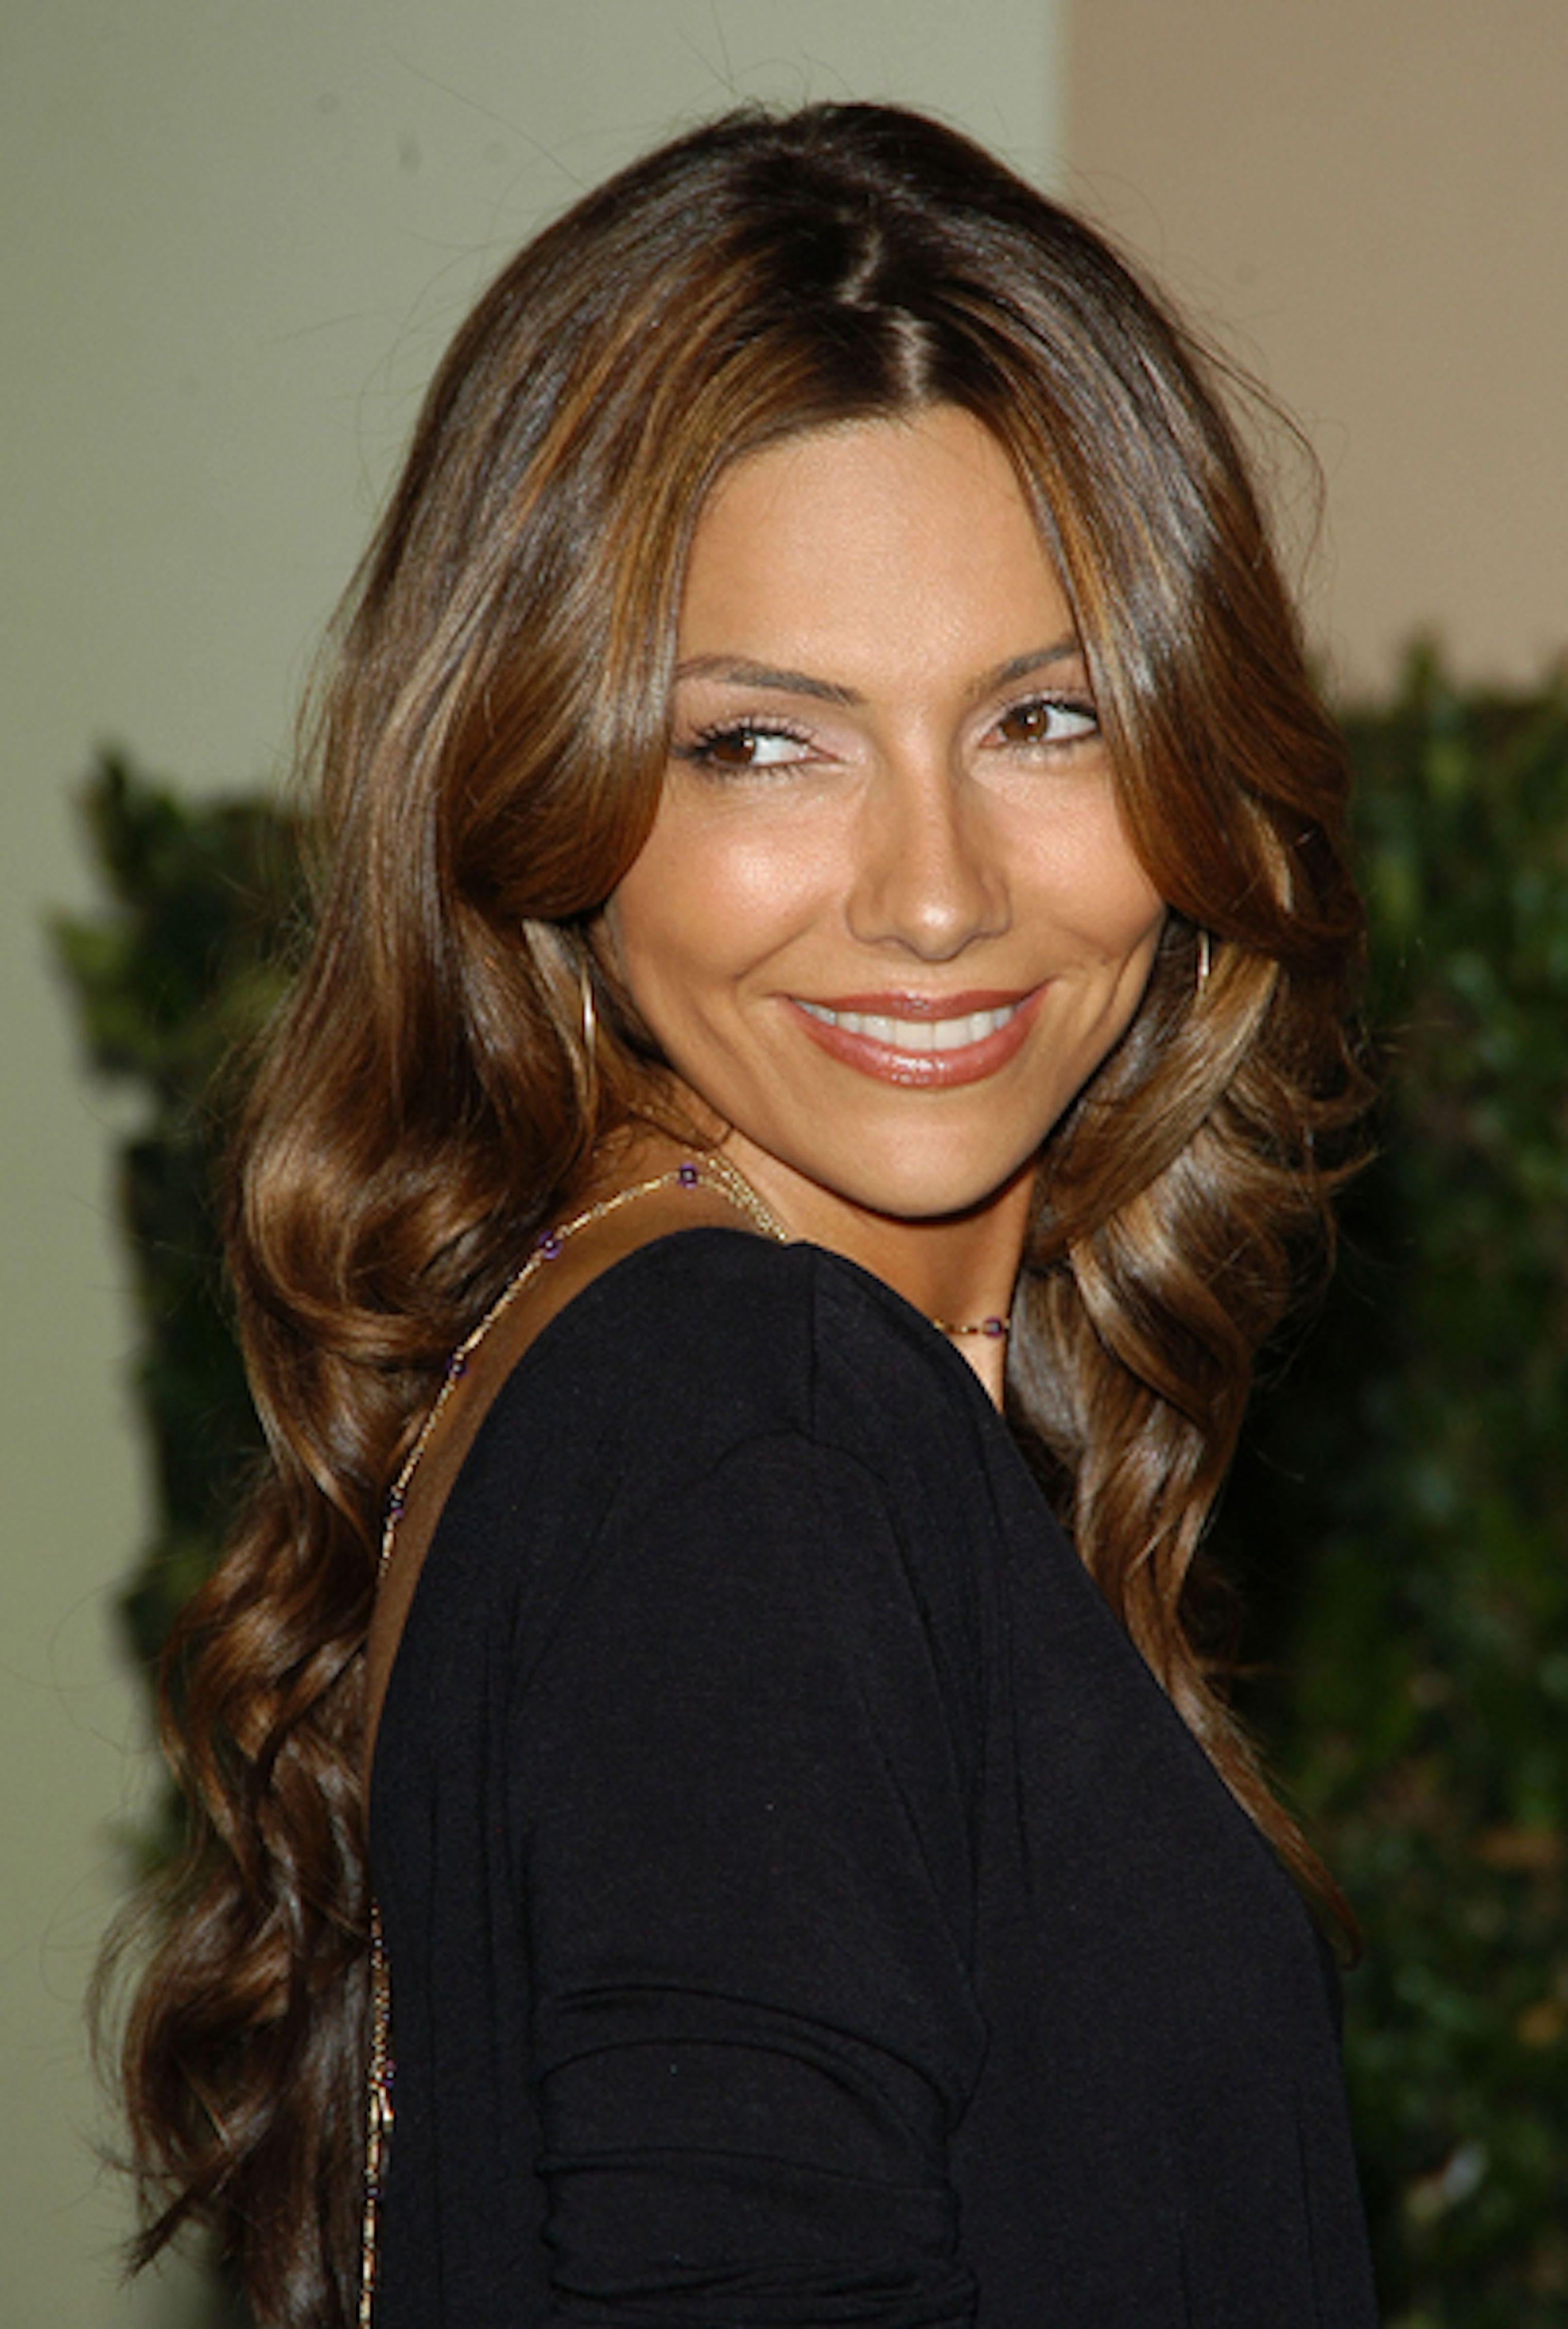 David charvet hairstyles for 2017 celebrity hairstyles by - Love These Highlights Vanessa Marcil Pretty Hairstyleslong